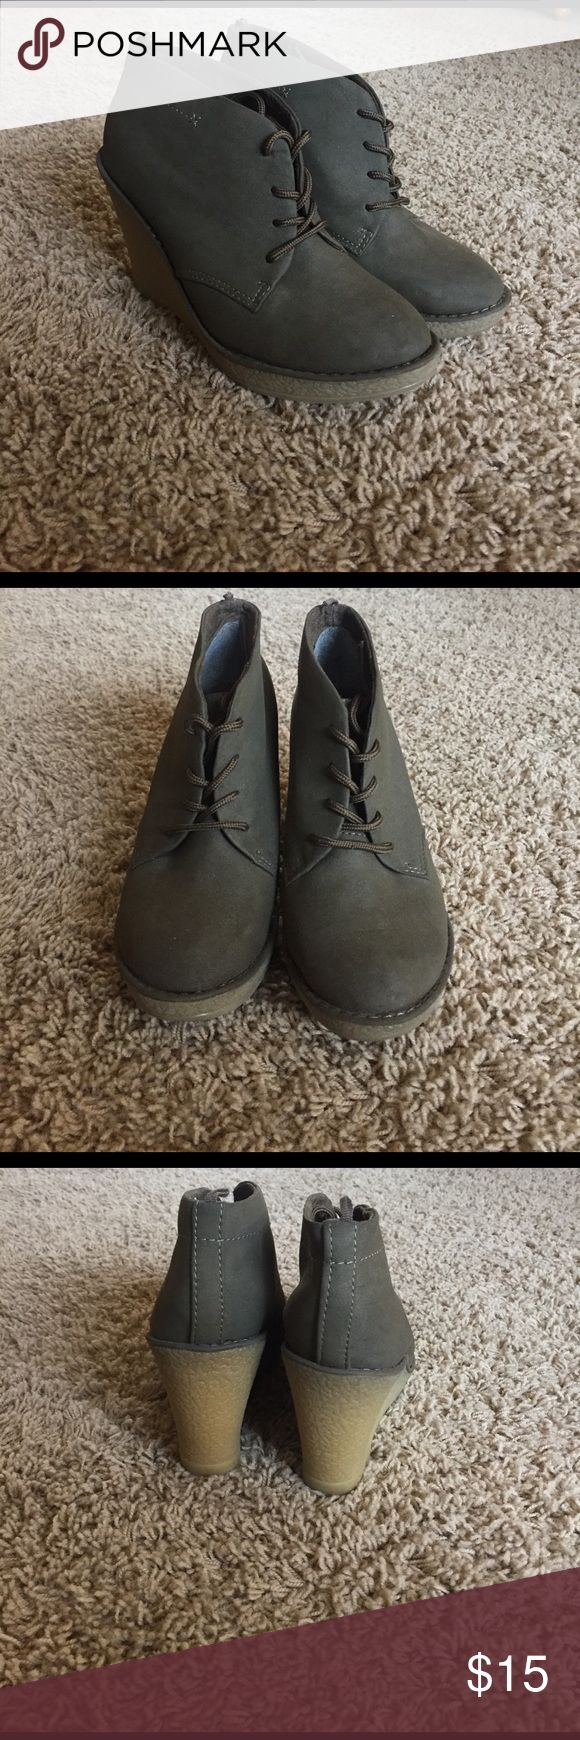 Green Old Navy Wedges Cute dark green booties for walking tall. Very comfortable with good traction.! feel free to make an offer Old Navy Shoes Ankle Boots & Booties